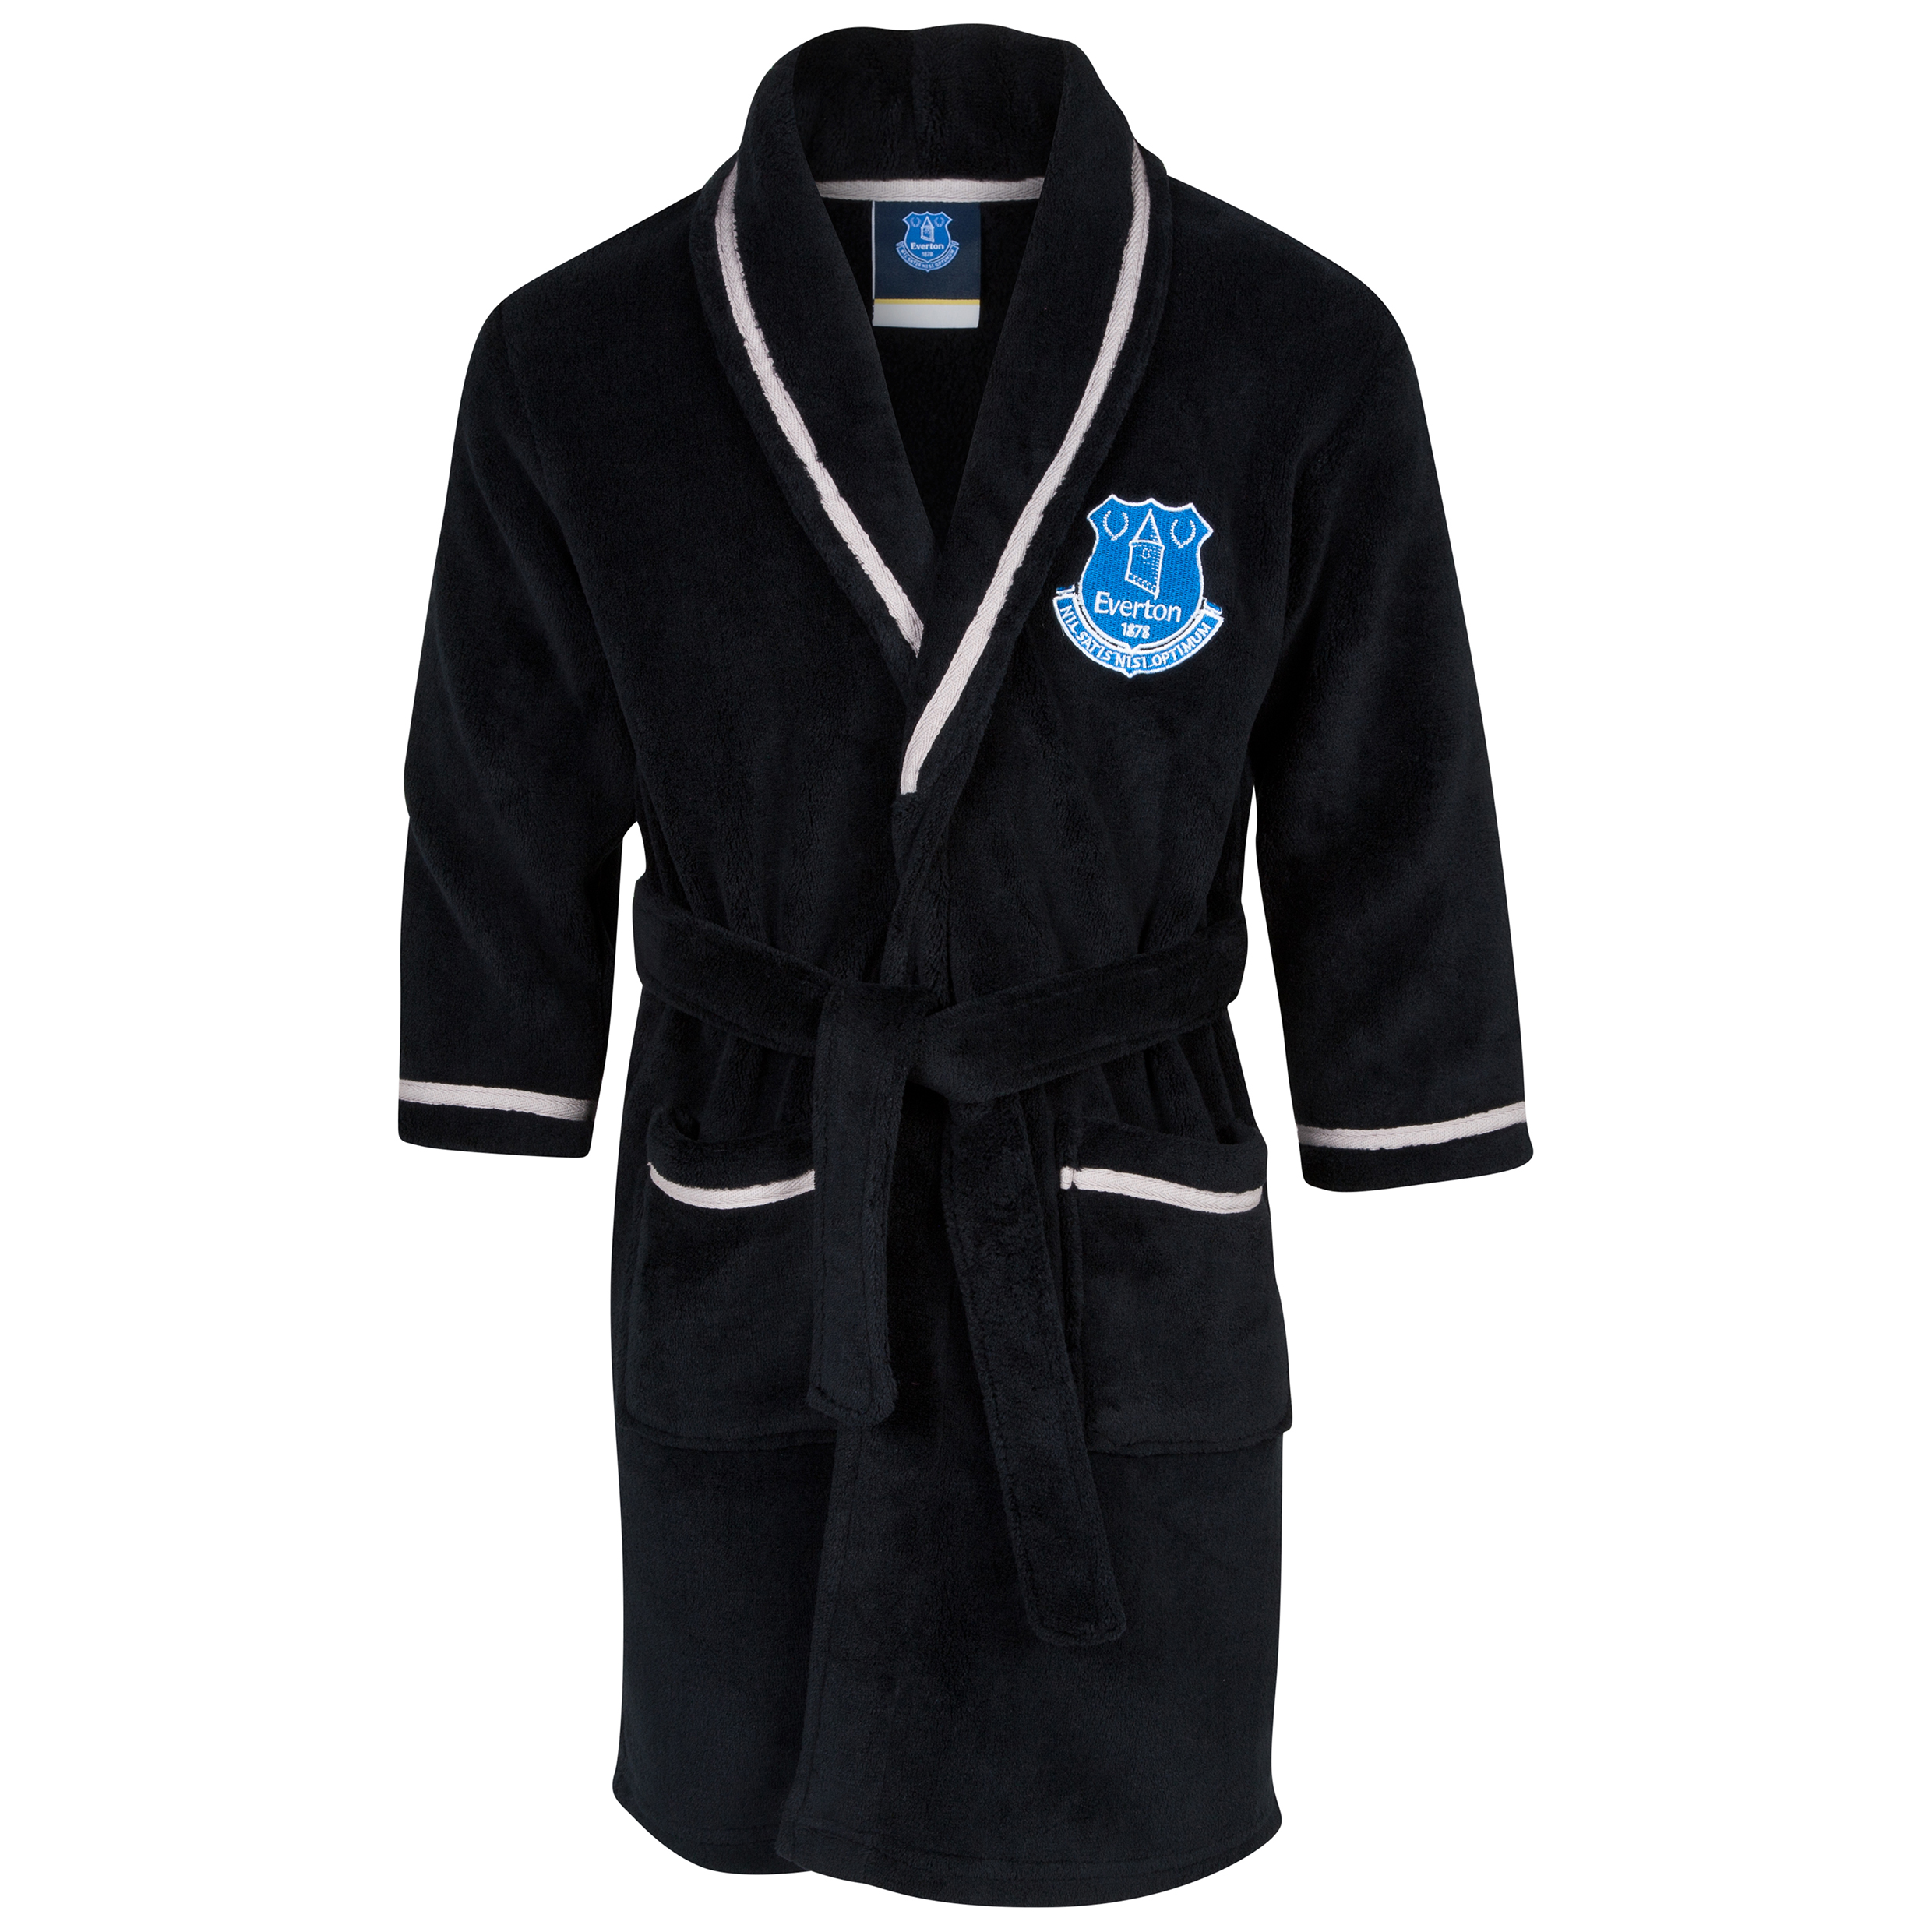 Everton Robe - Black - Boys